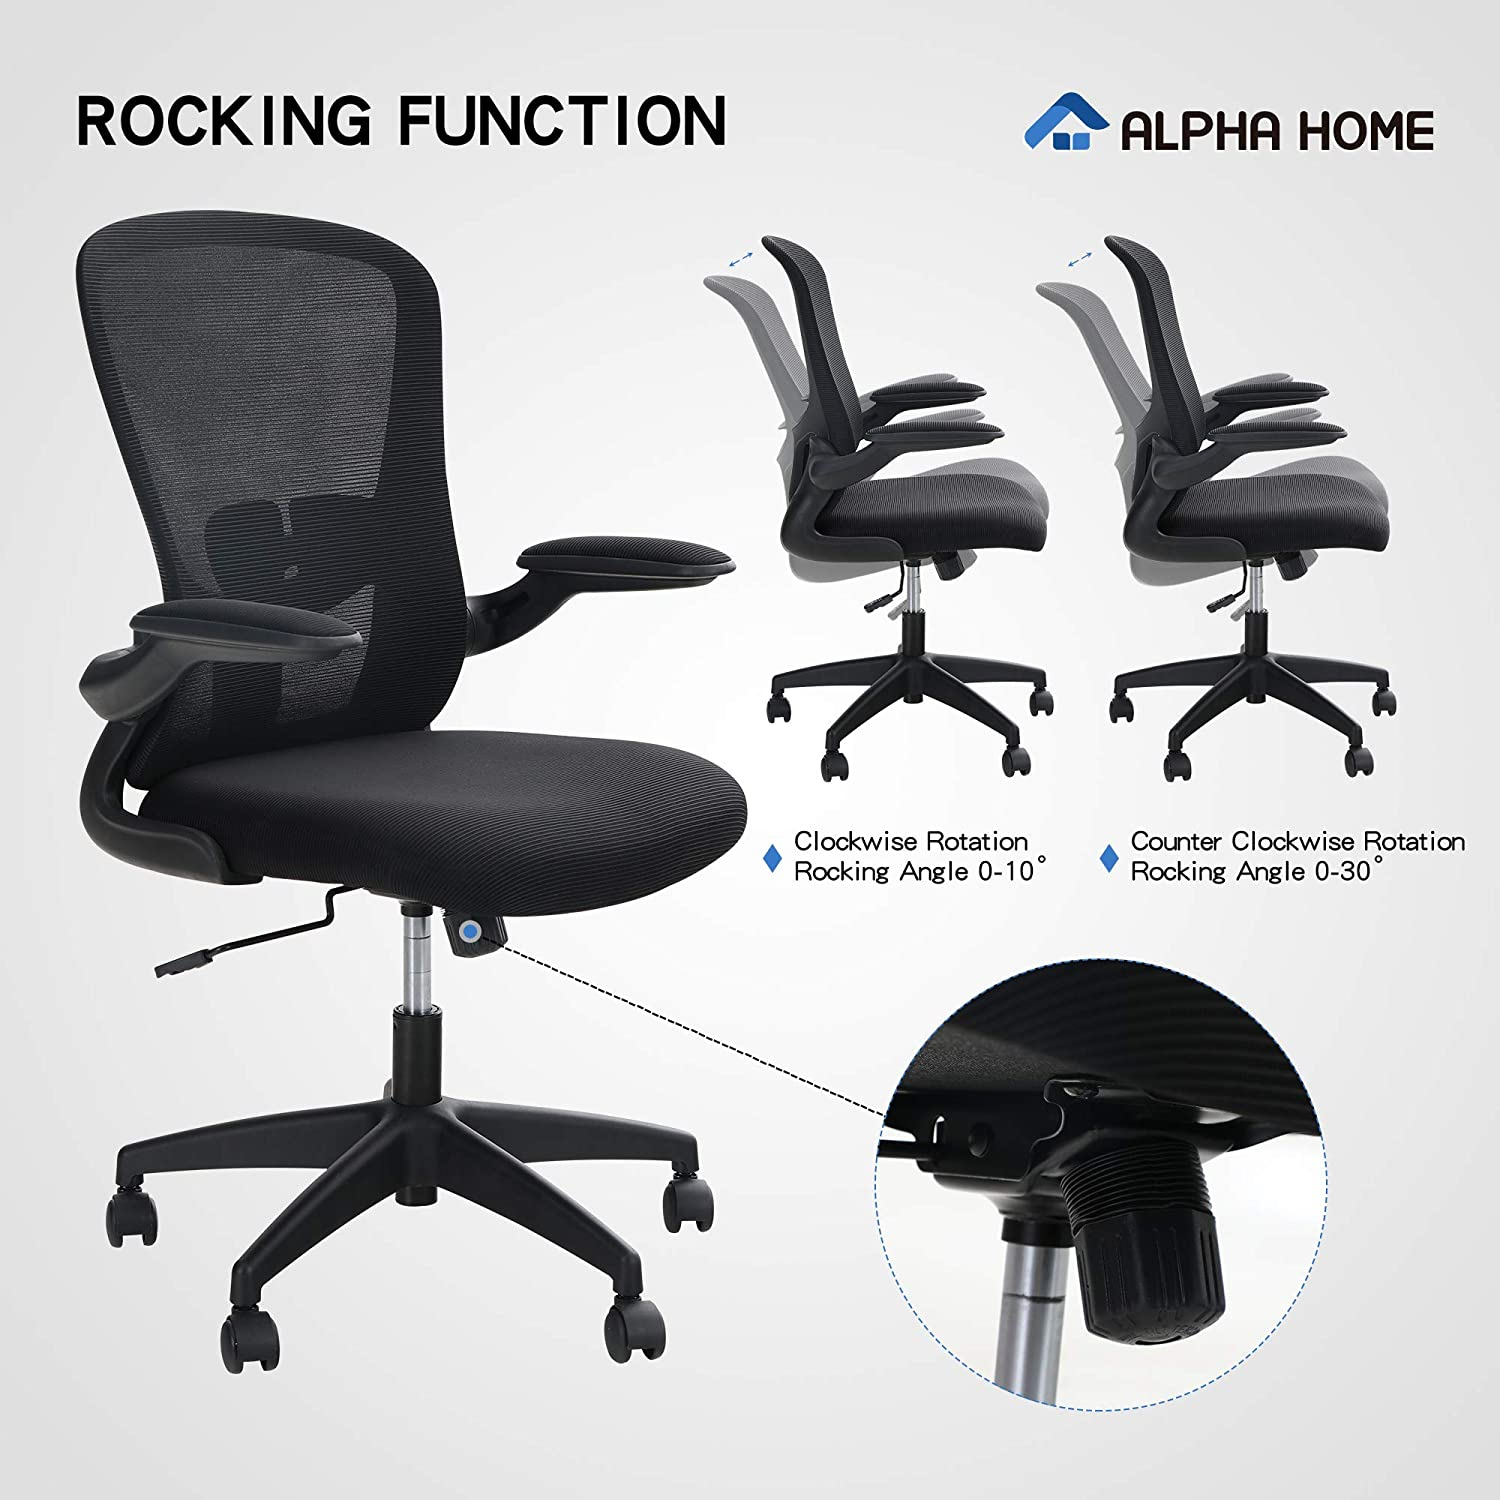 ALPHA HOME Ergonomic Office Chair Mid Back Computer Desk Chair with Flip-up Tufted Armrest Executive Adjustable Chair with Lumbar Support Mesh Rolling Swivel Chair with Casters-Capacity 350LBS